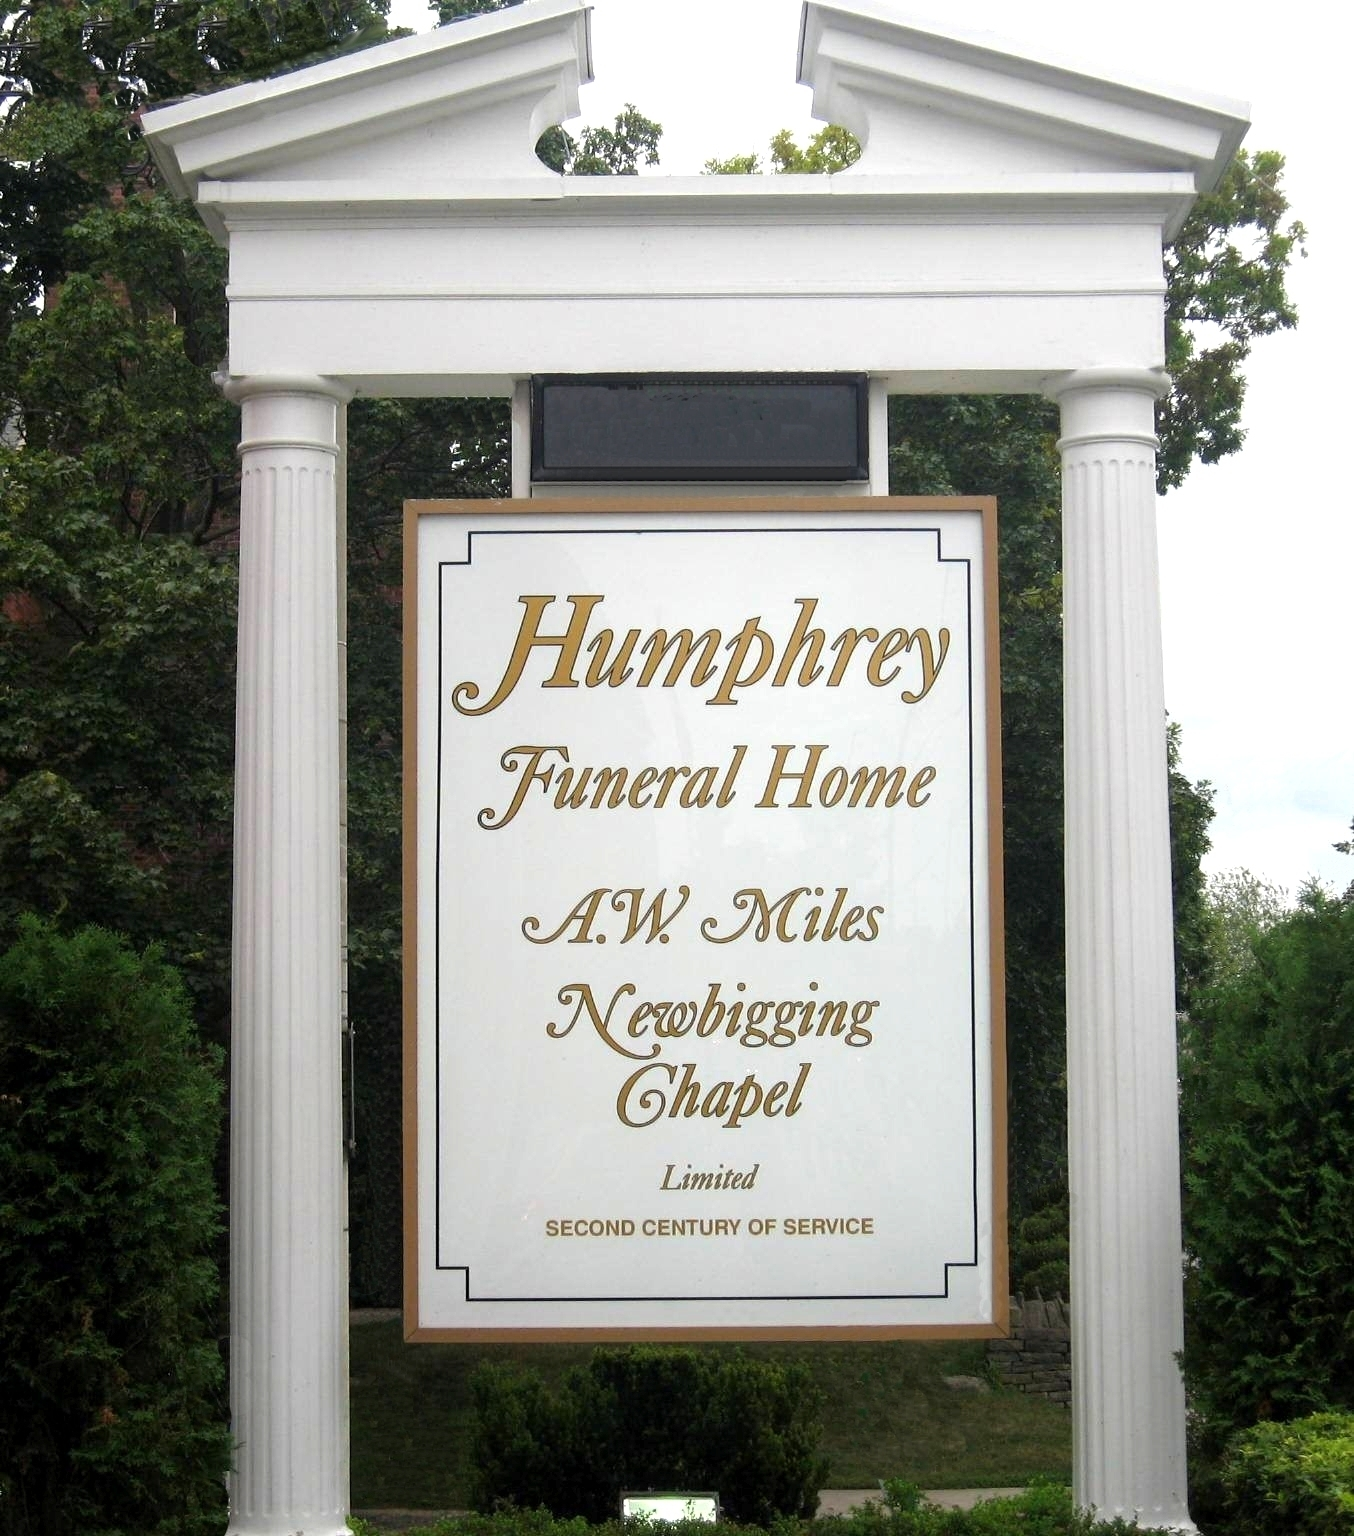 Humphrey Funeral Home A W Miles Newbigging Chapel Limited